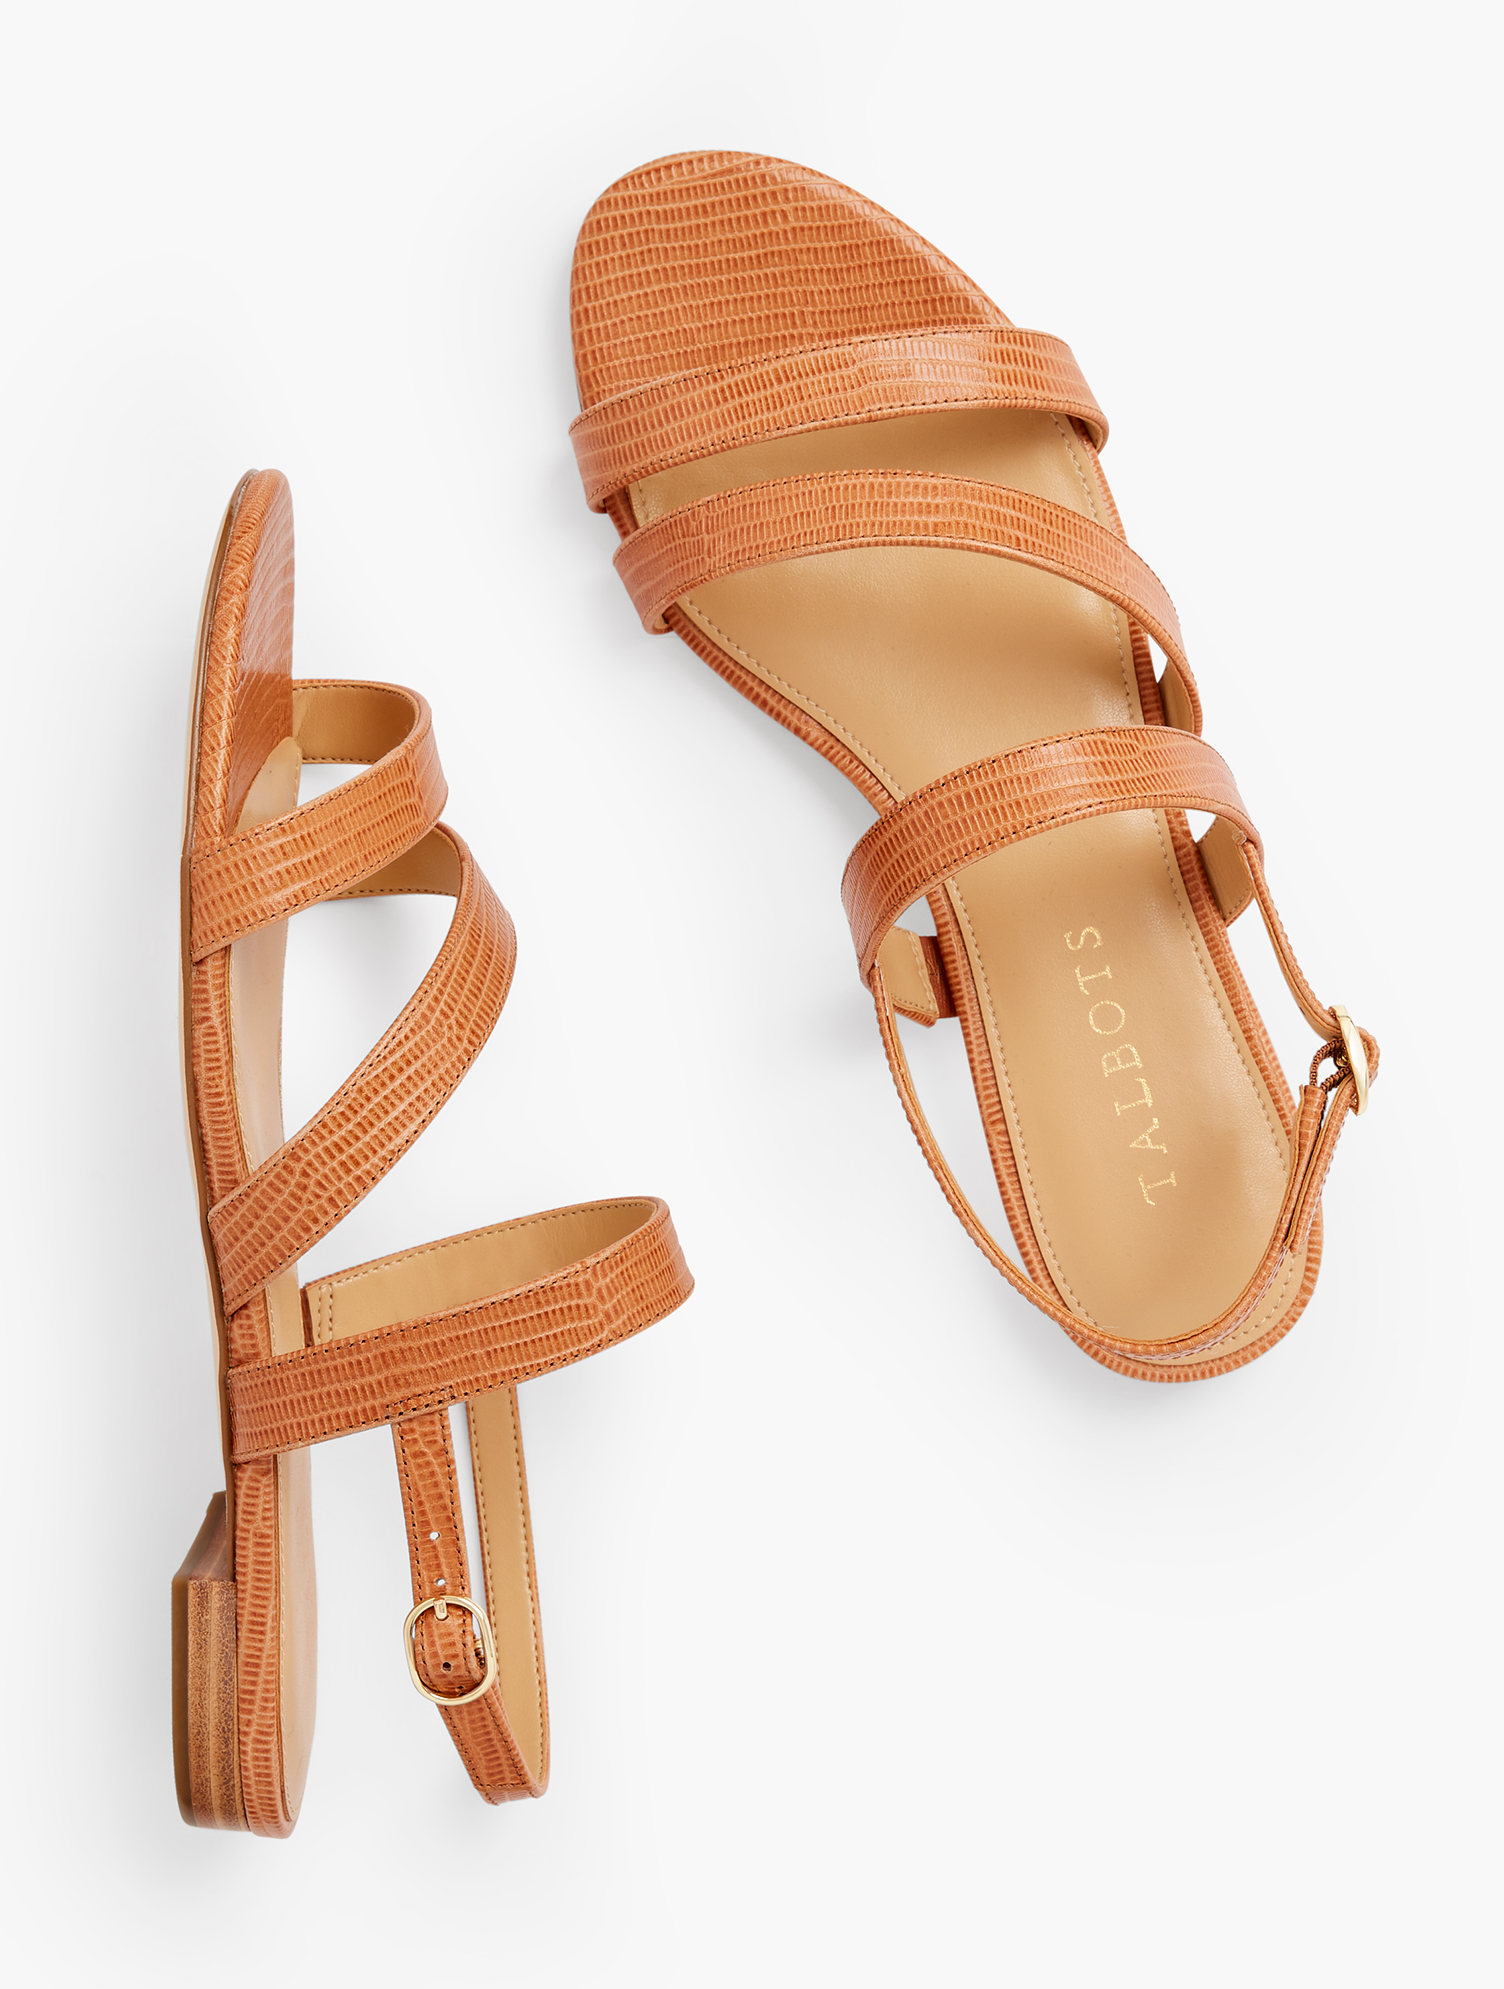 Our Keri Multi Strap Sandals. Ultra chic. Ultra comfortable. With memory foam footbed. Features Gift Box/Gift Wrap is not available for this item 1/2 inches heel Flexible Non Skid Outsole 9k Shiny Gold Hardware 3Mm Memory Foam Footbed Imported Material: 100% Leather Keri Multi Strap Sandals - Havana Tan - 7-1/2M Talbots